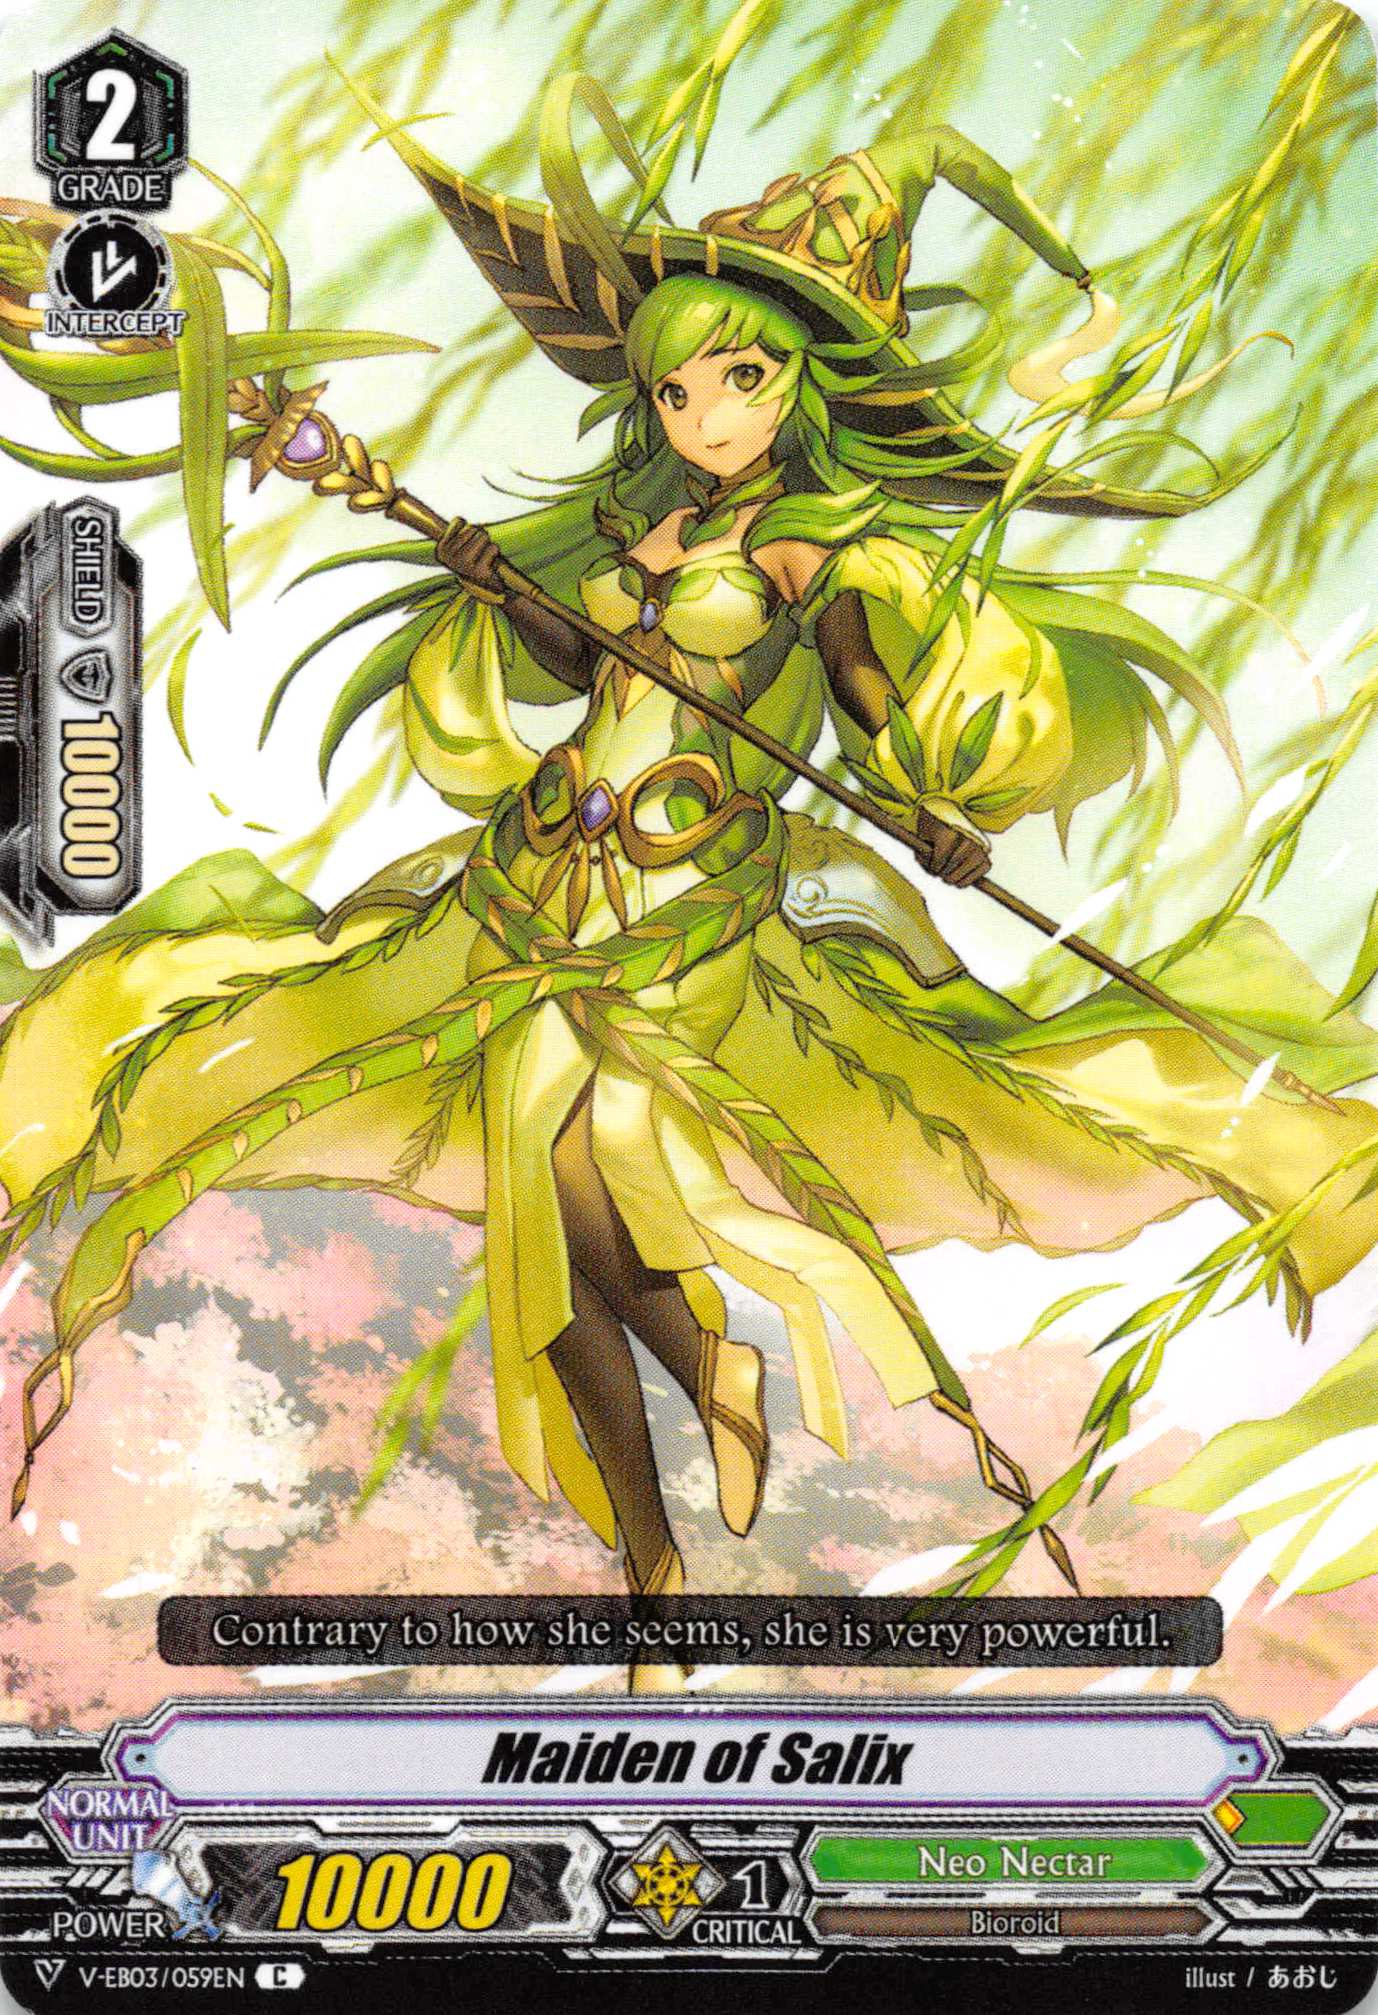 Maiden of Salix - Duel Kingdom | Duel Kingdom